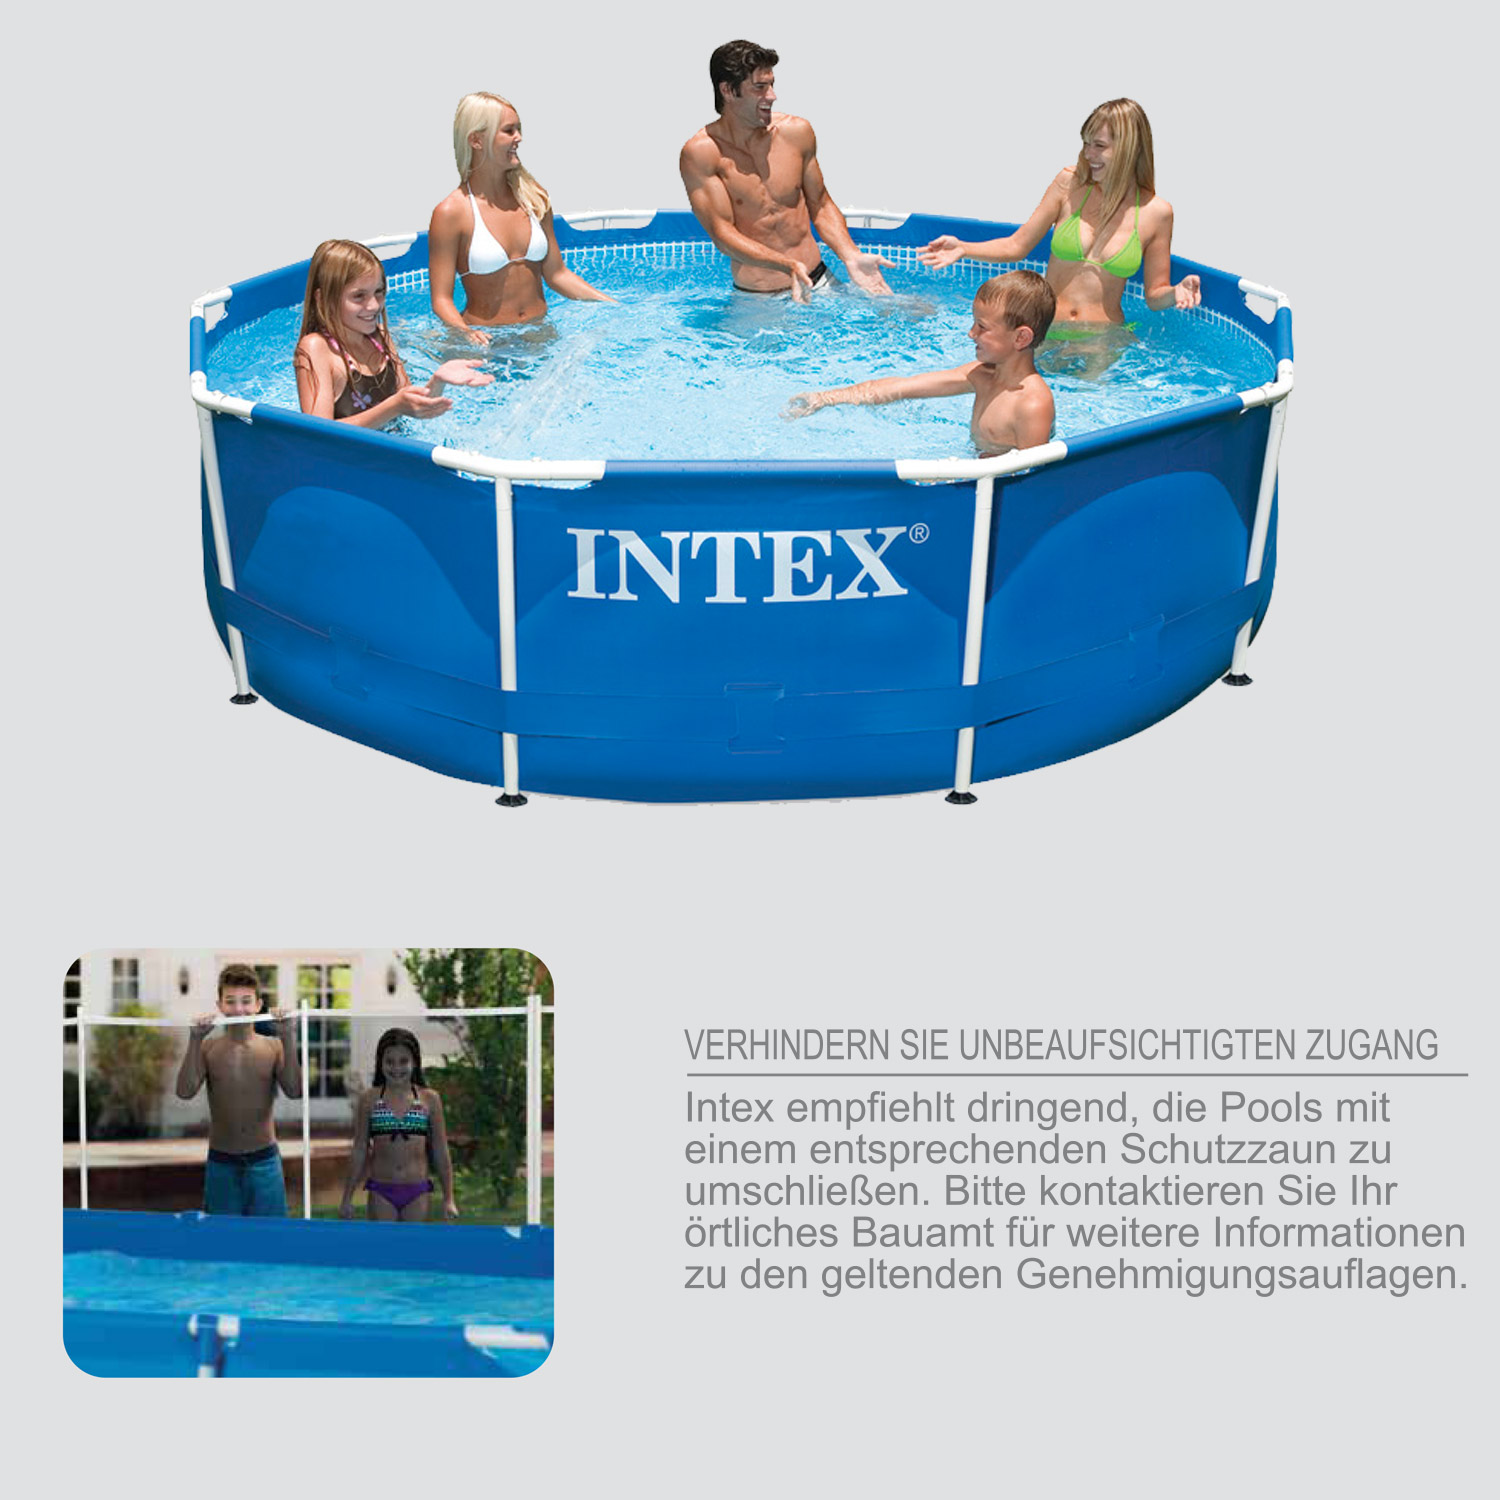 intex 305x76 swimming pool frame stahlwandbecken. Black Bedroom Furniture Sets. Home Design Ideas